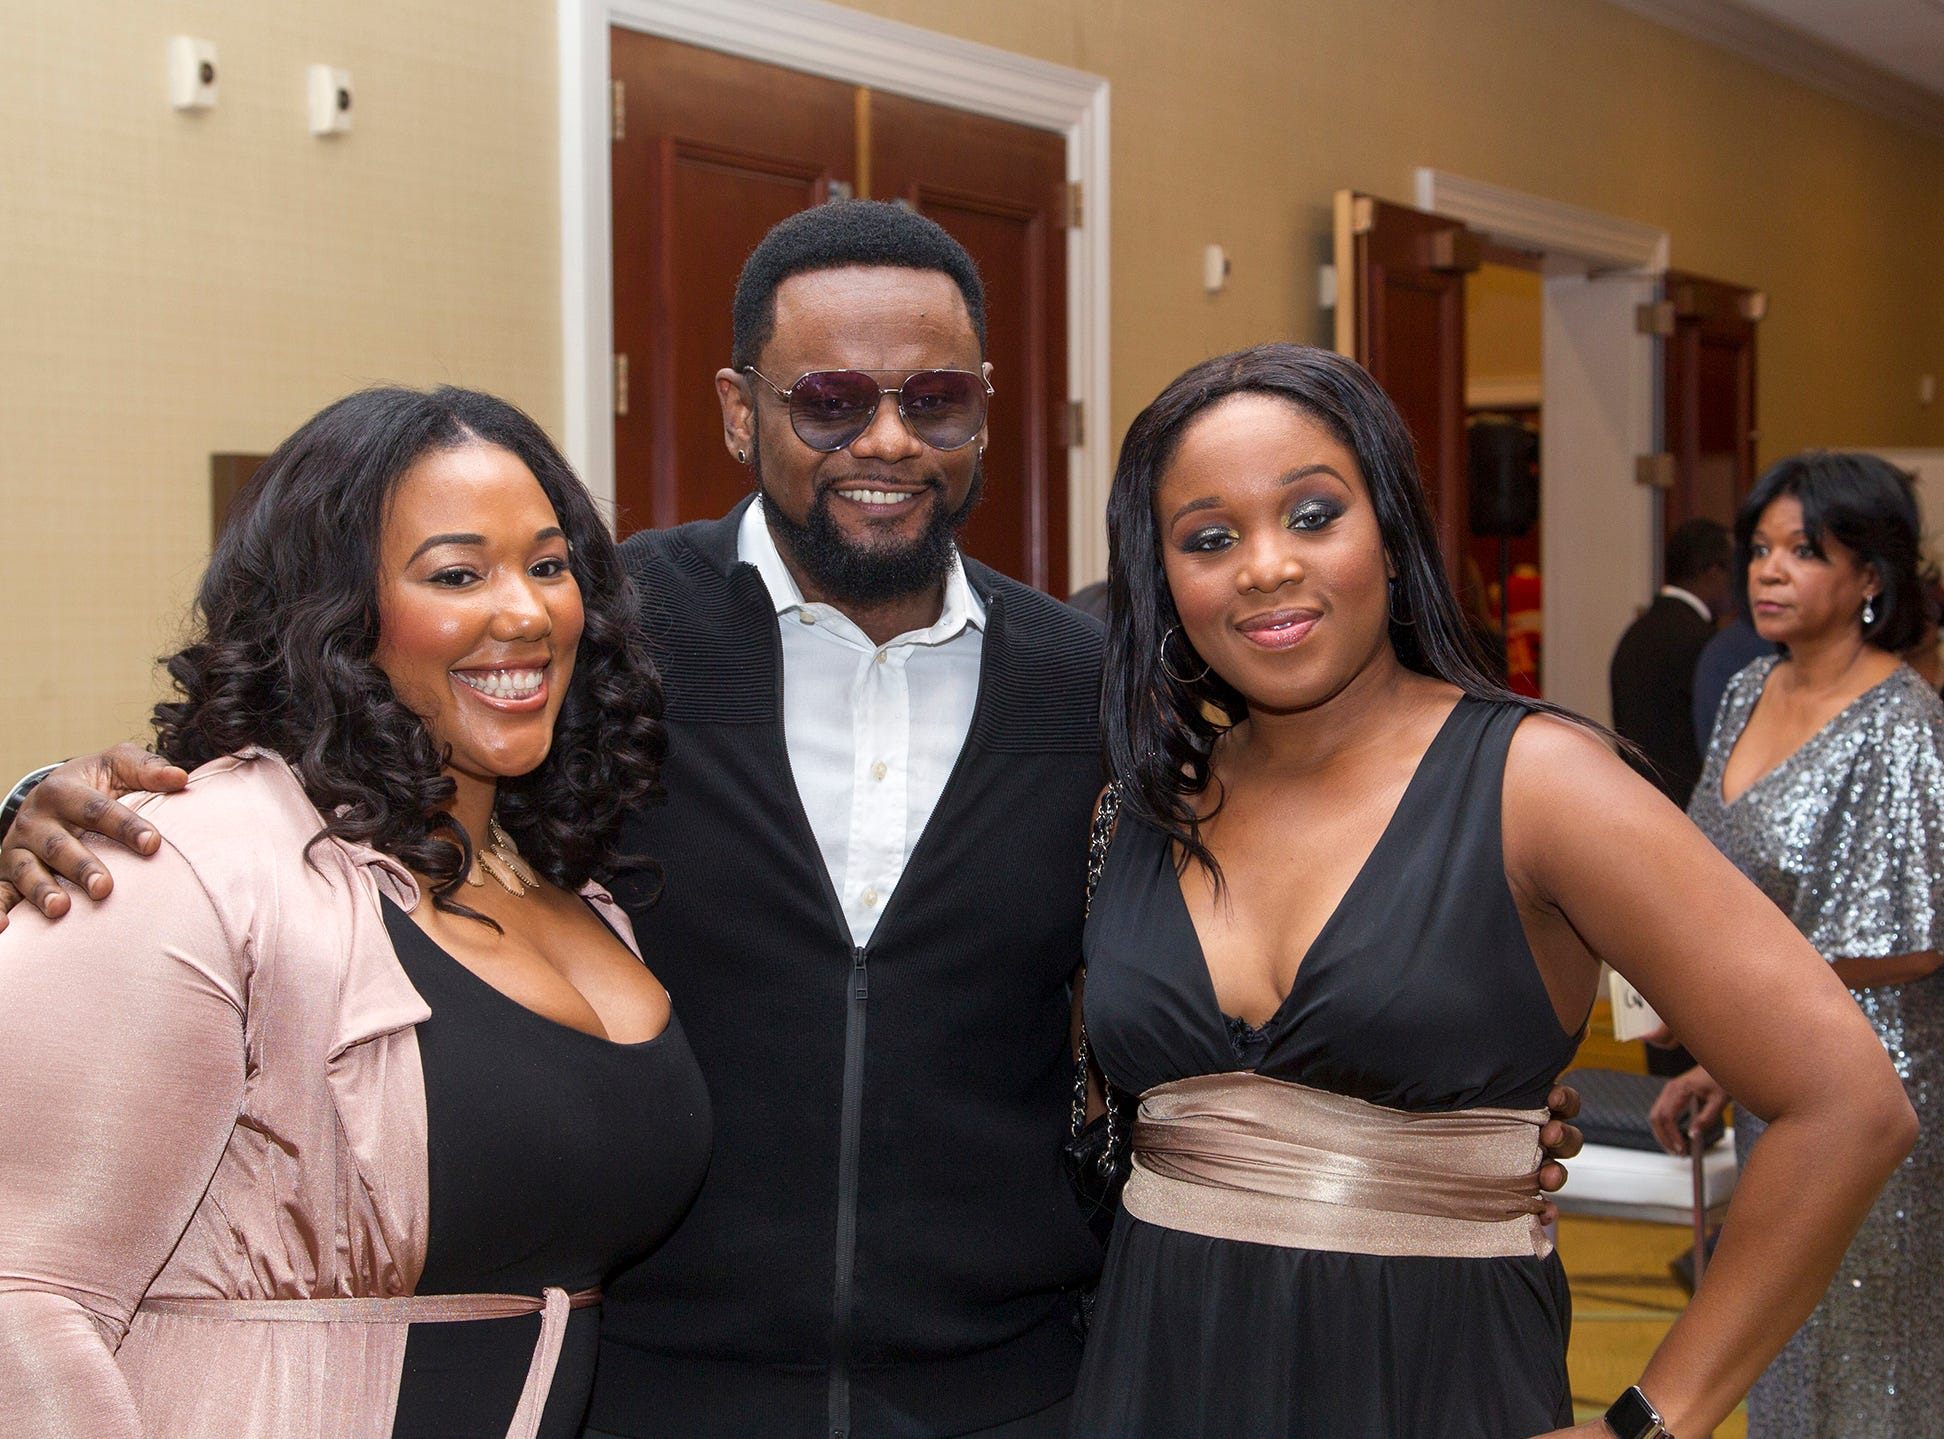 Shai, Carl Thomas, Nubia Siddiqu. Jessie Banks Foundation holds 16th annual Scholarship Awards Gala in Teaneck. 11/09/2018